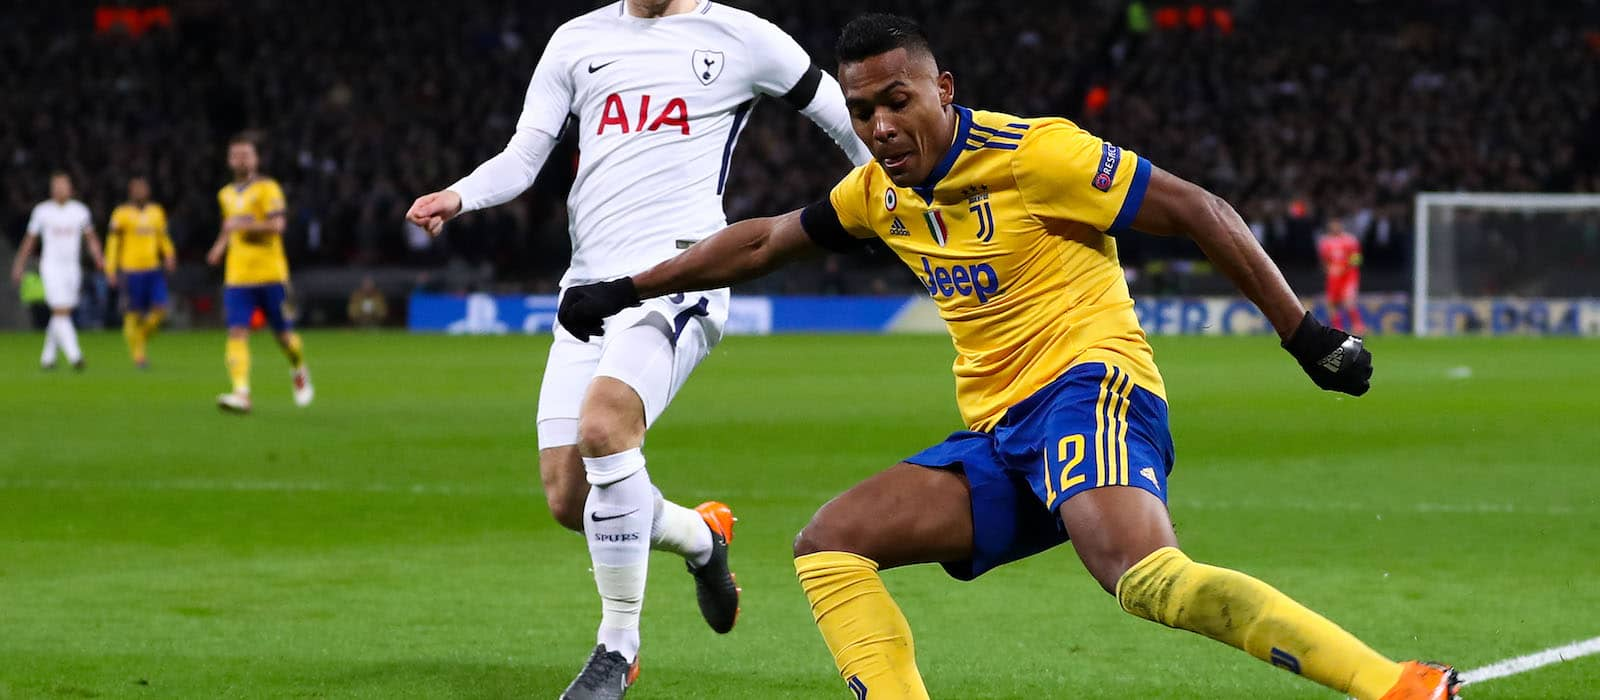 From Italy: Alex Sandro part of Juventus' plans for next season